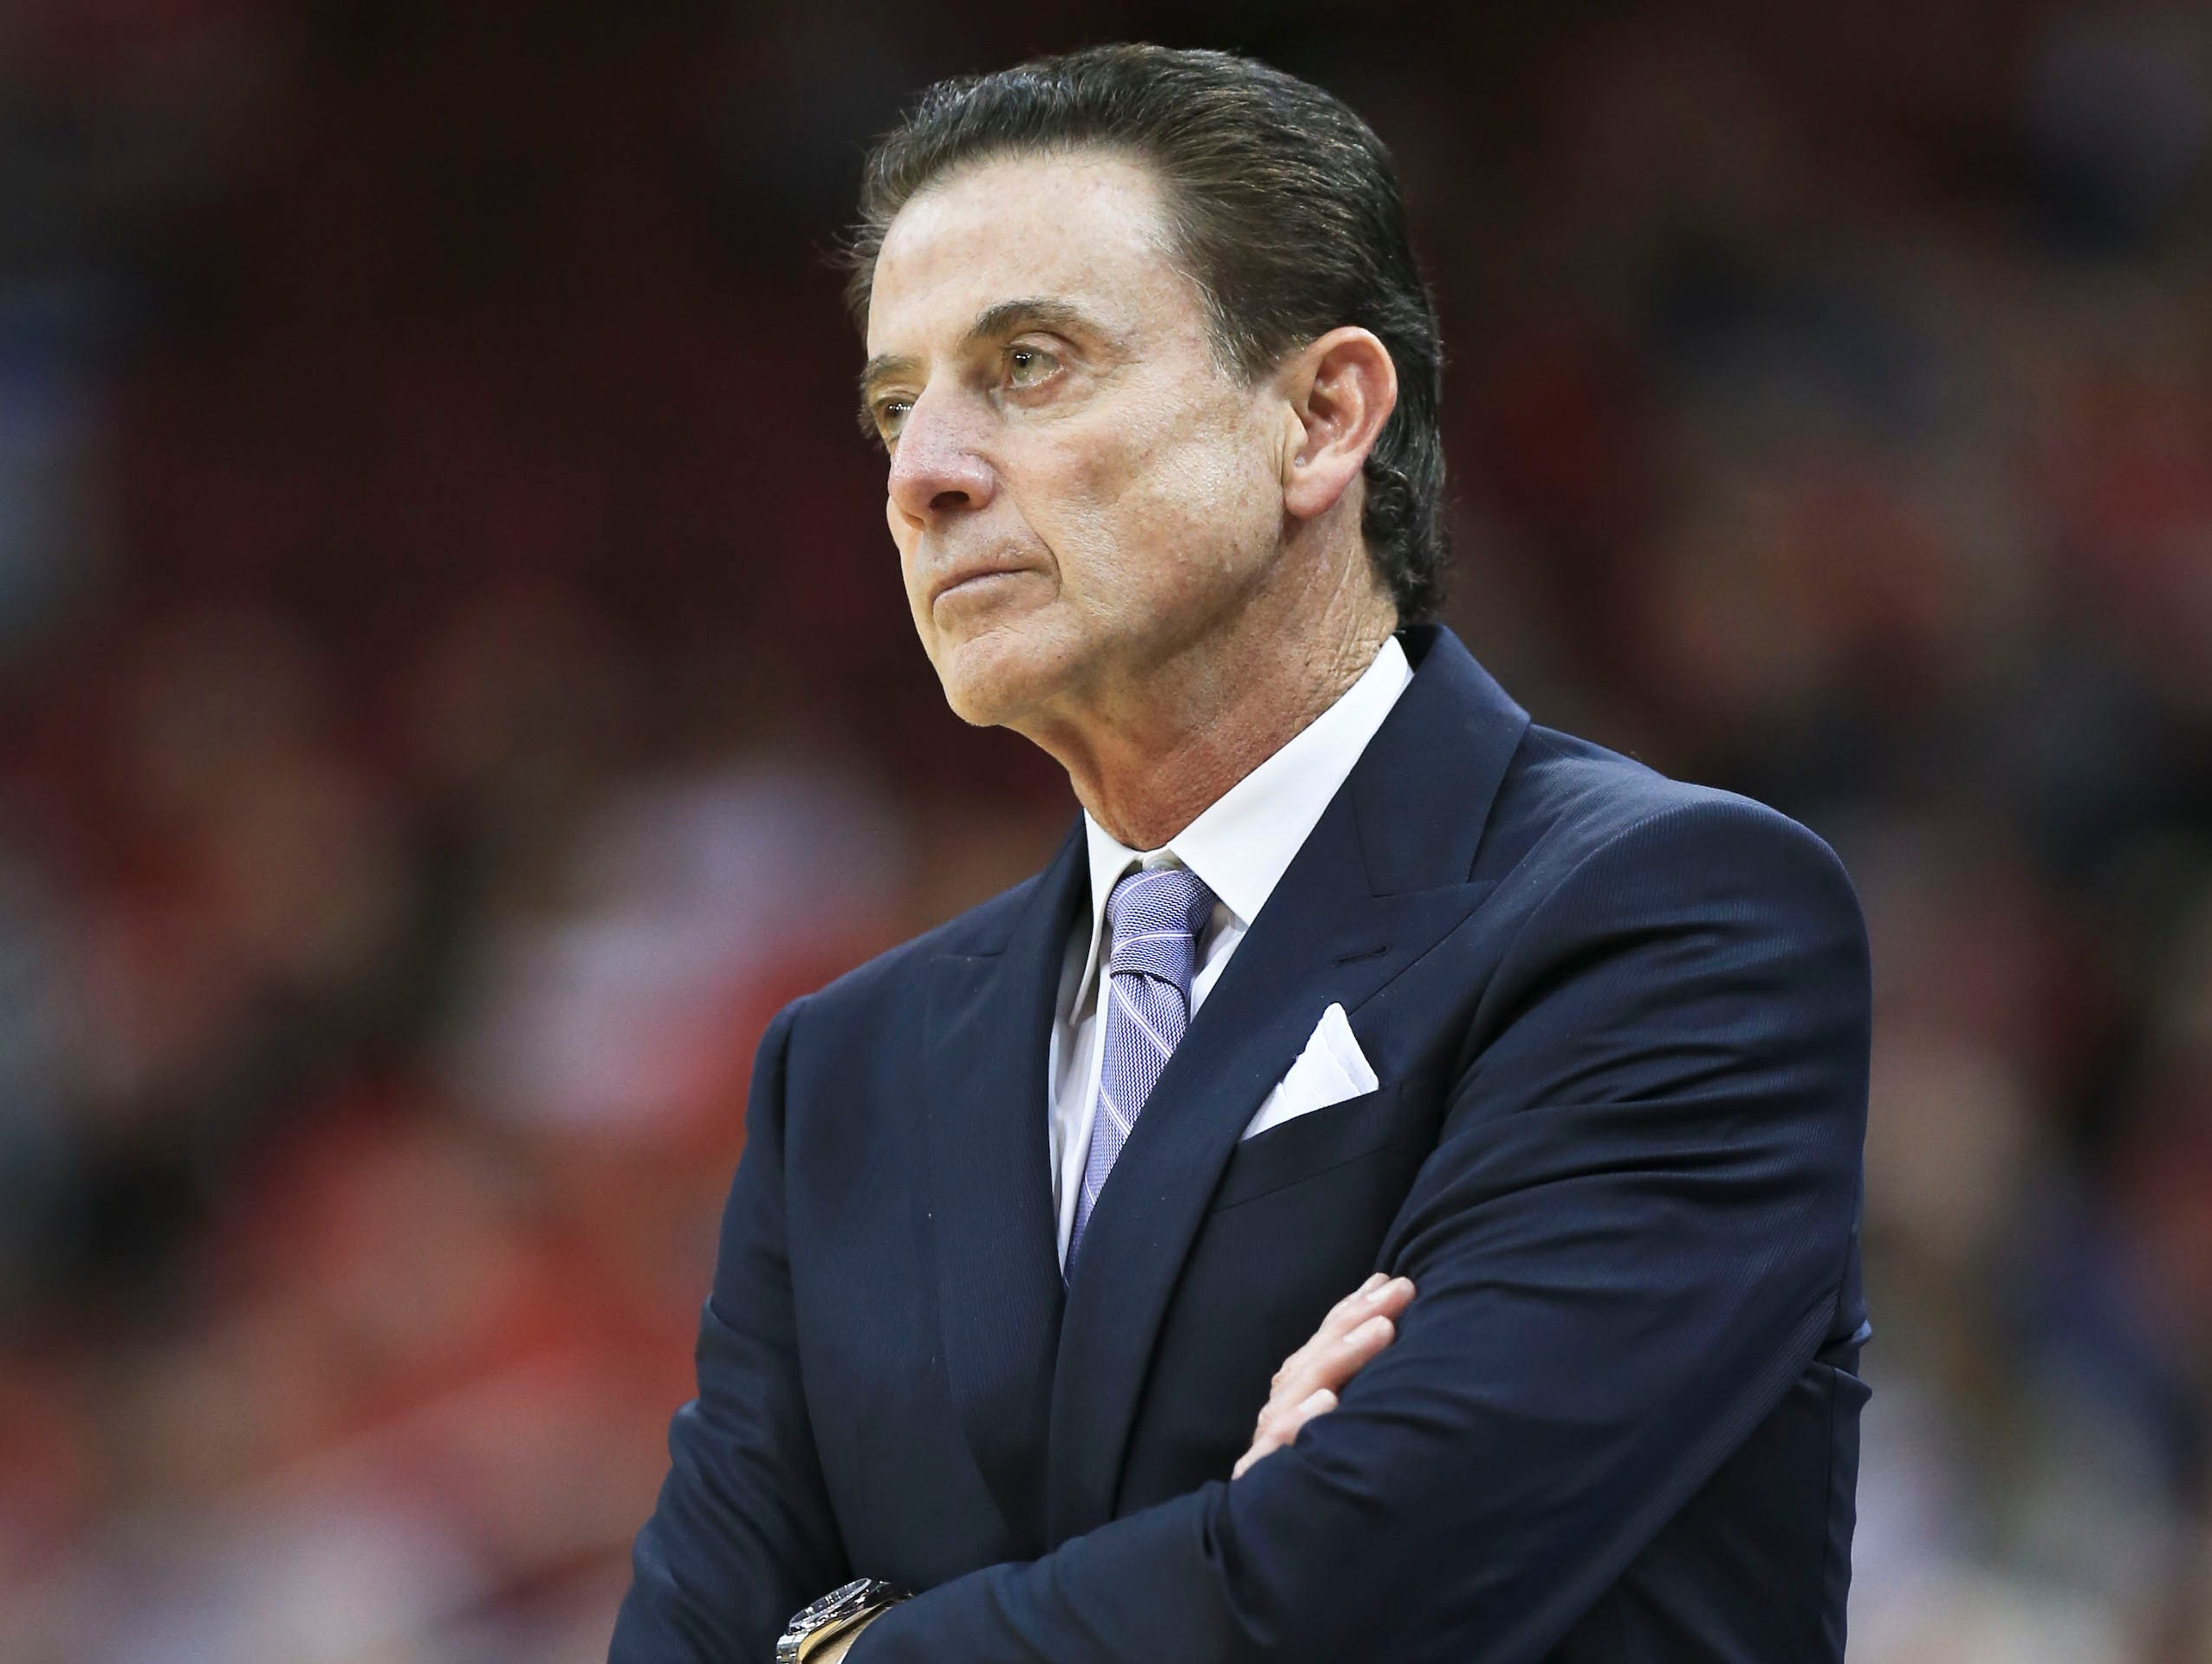 Rick Pitino coaching during a game against Long Beach State in November 2016.